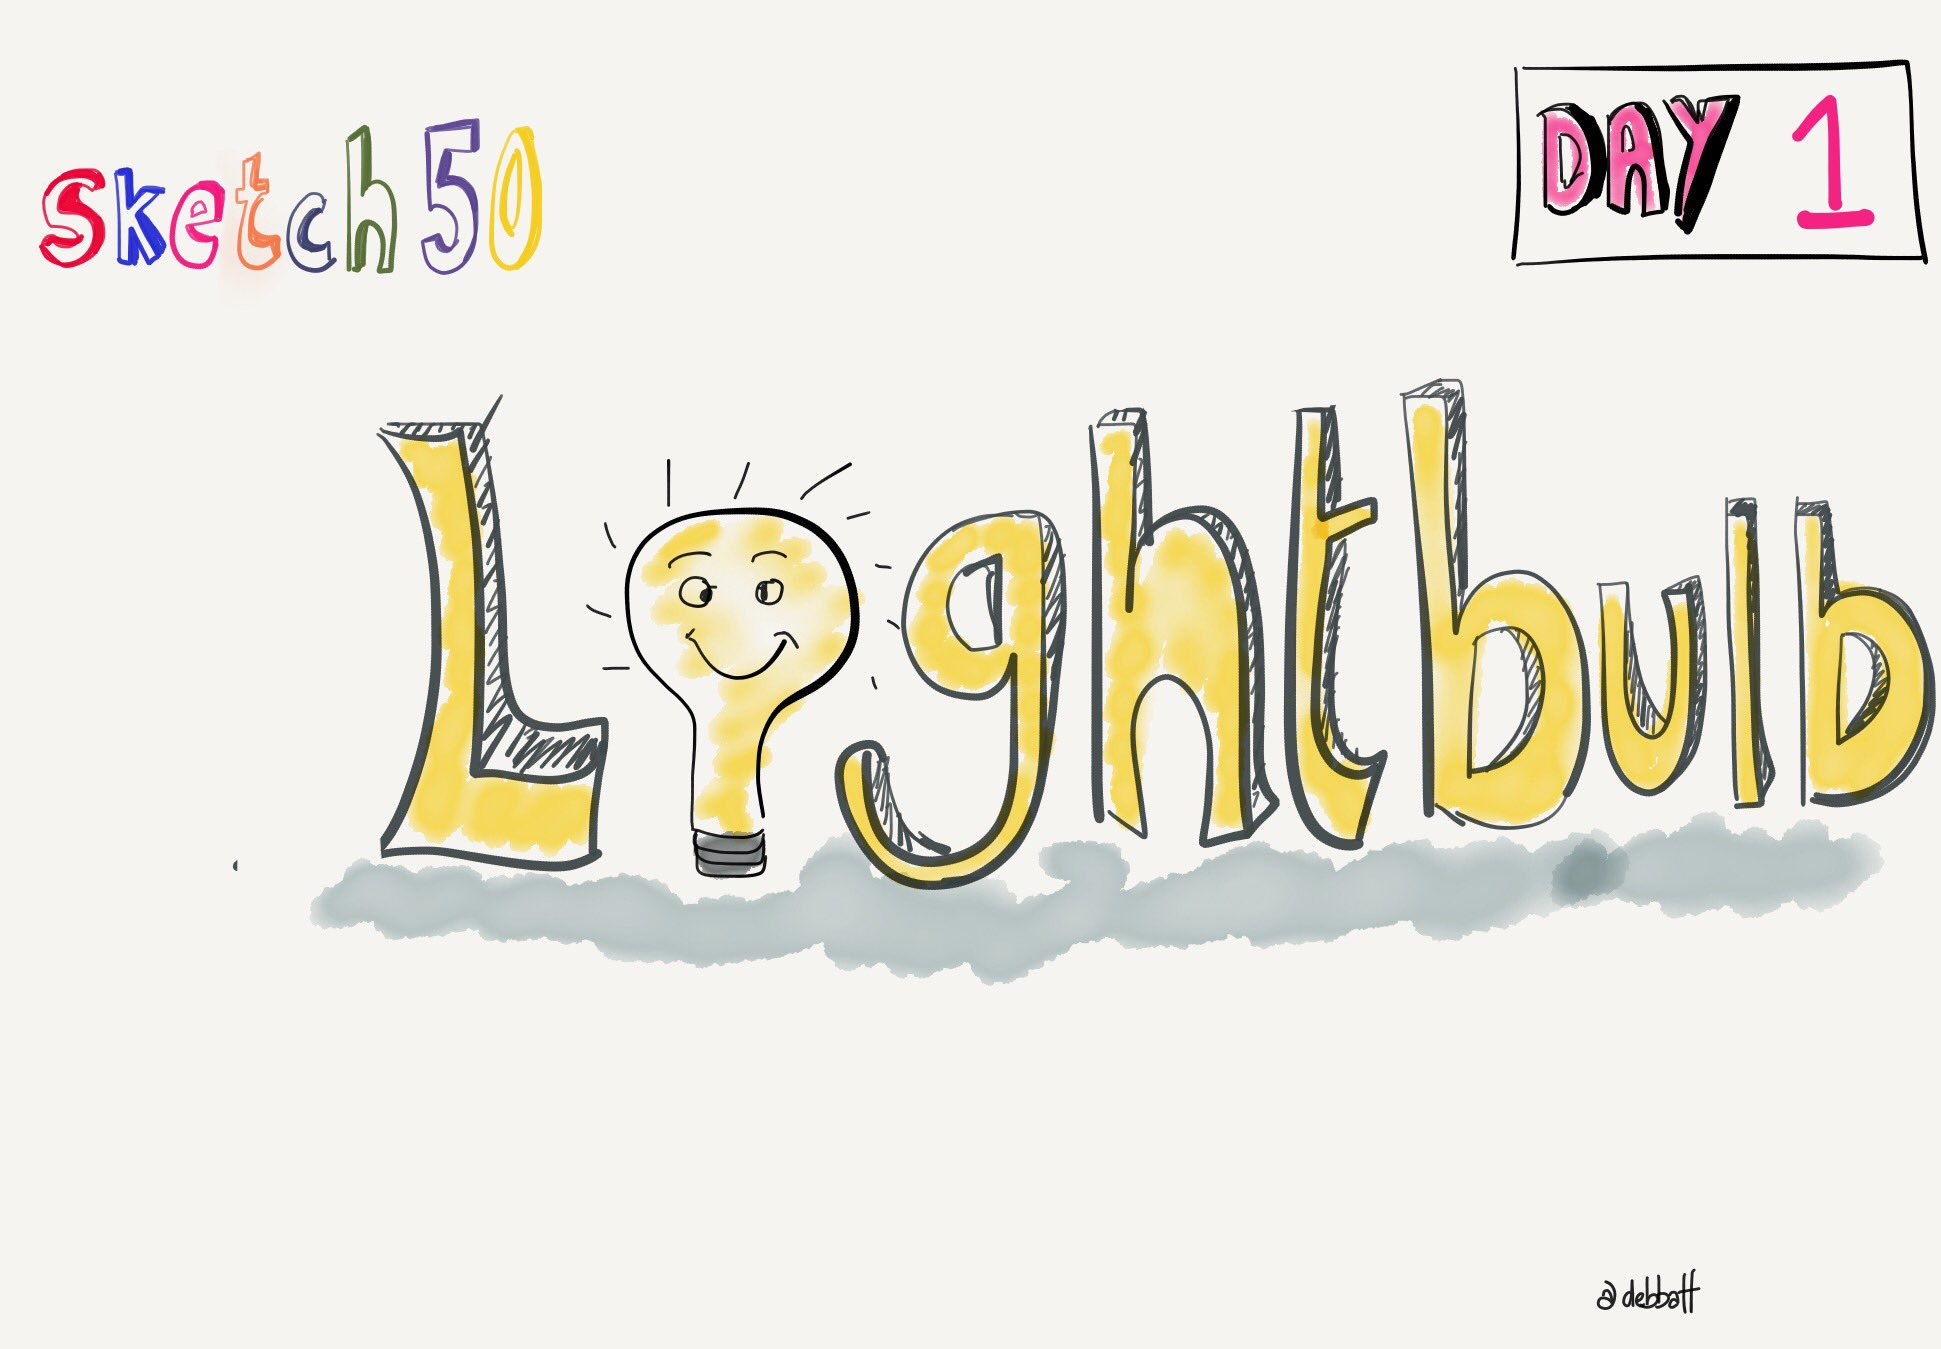 @sketch50 #sketchnotes #sketch50 a rather late lightbulb for Day 1 growth mindset ... https://t.co/CVyufVVVaV